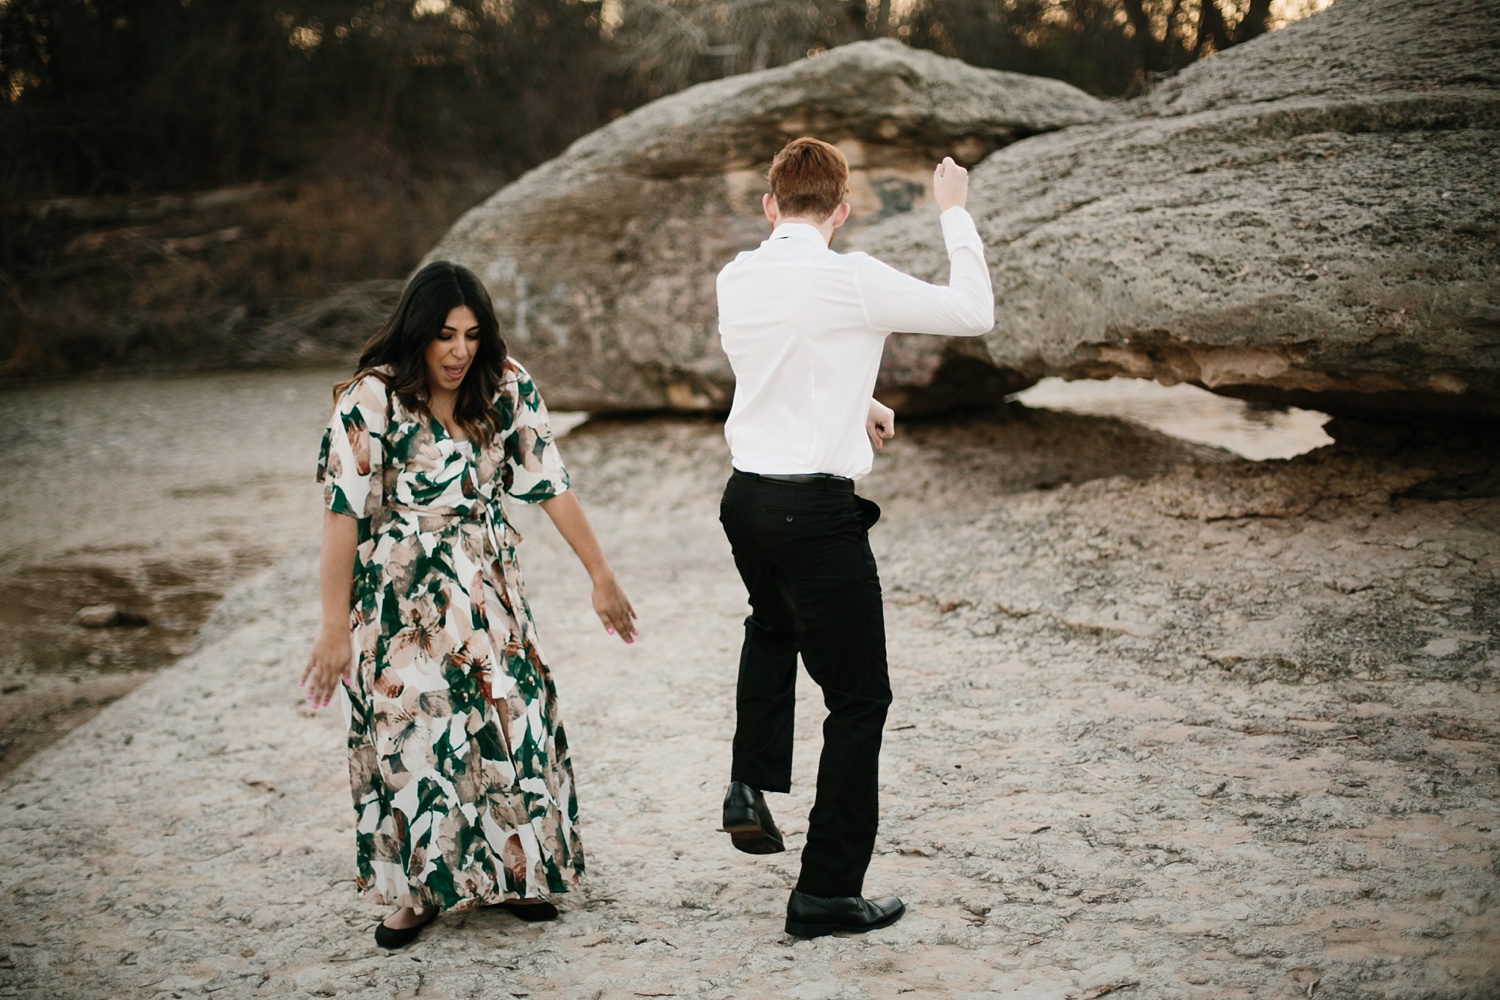 Grant + Lysette - floral dress engagement session by North Texas Wedding Photographer Rachel Meagan Photography089